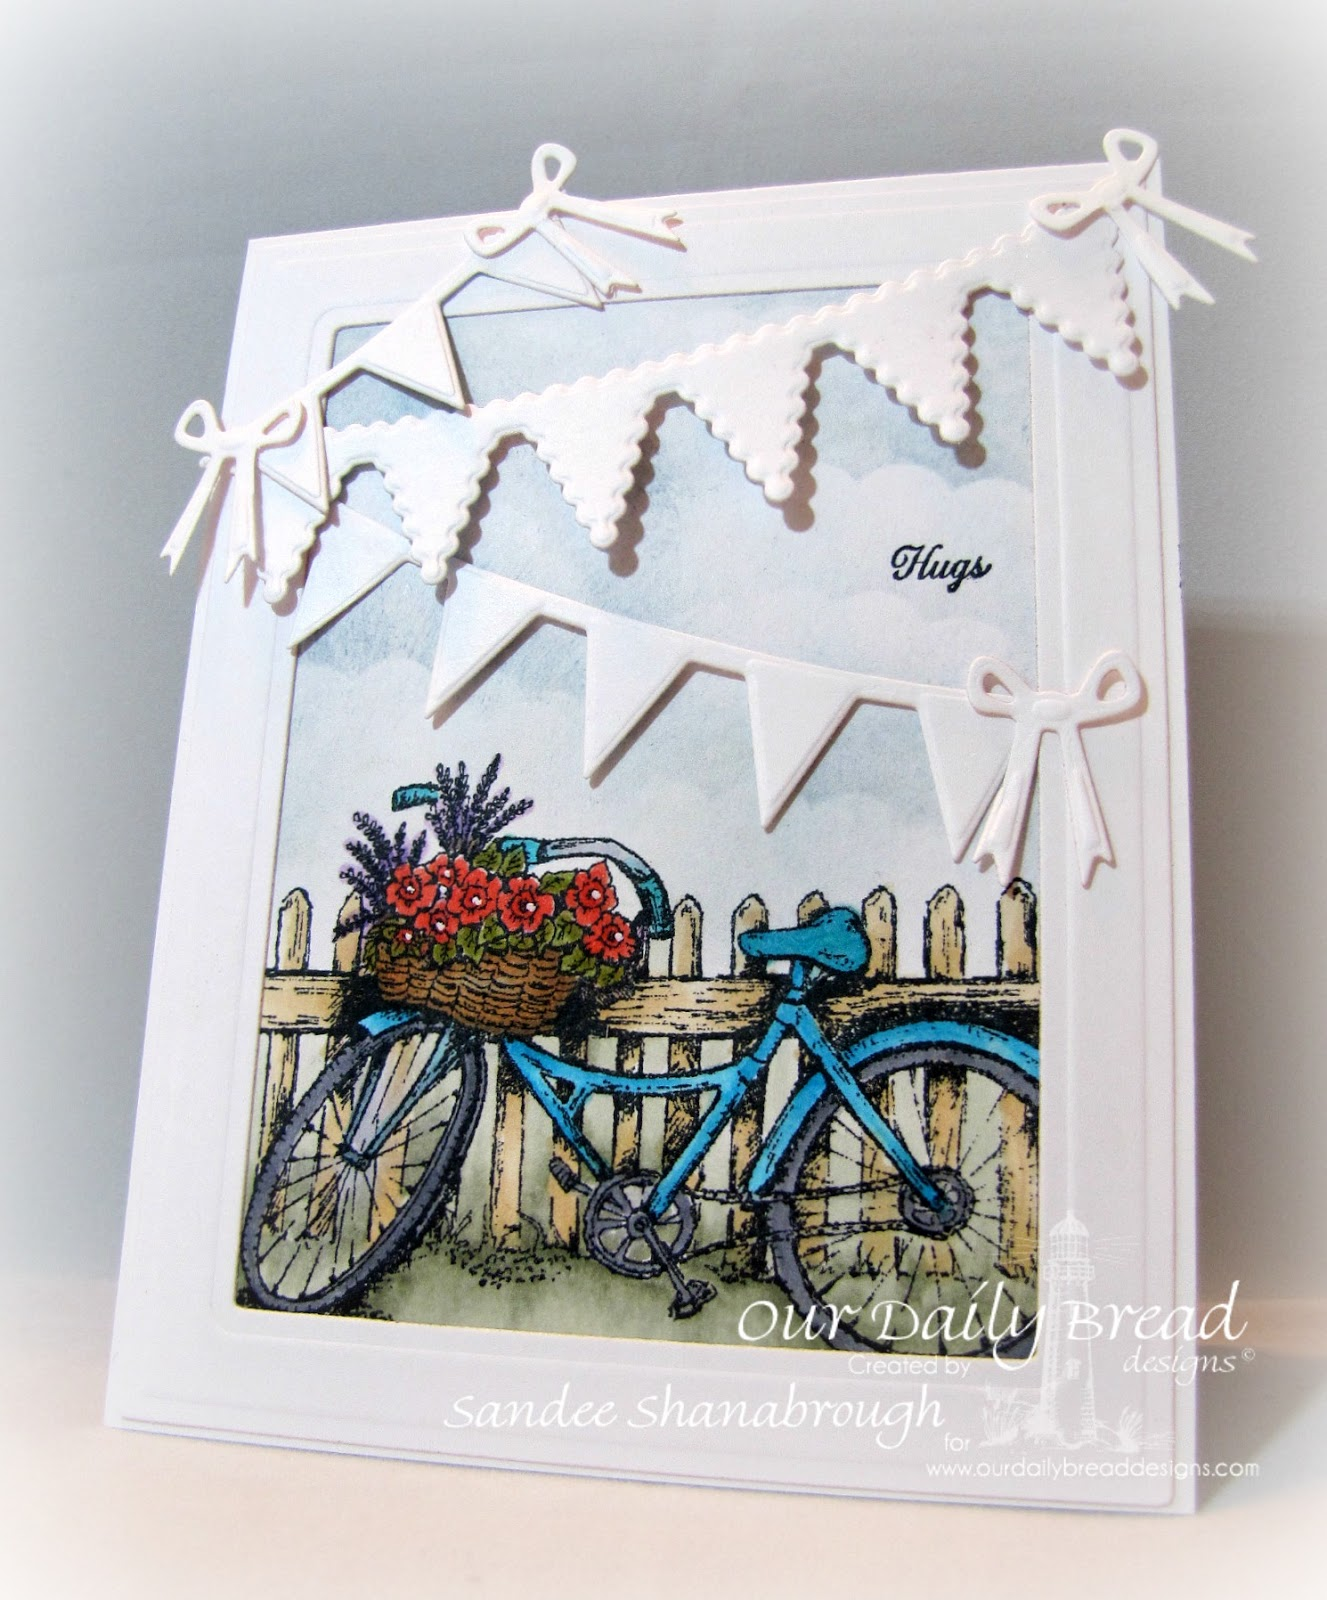 Stamps - Our Daily Bread Designs Bicycle, Ornate Borders Sentiments, ODBD Custom Pennant Row Die,ODBD Custom Pennant Swag Die